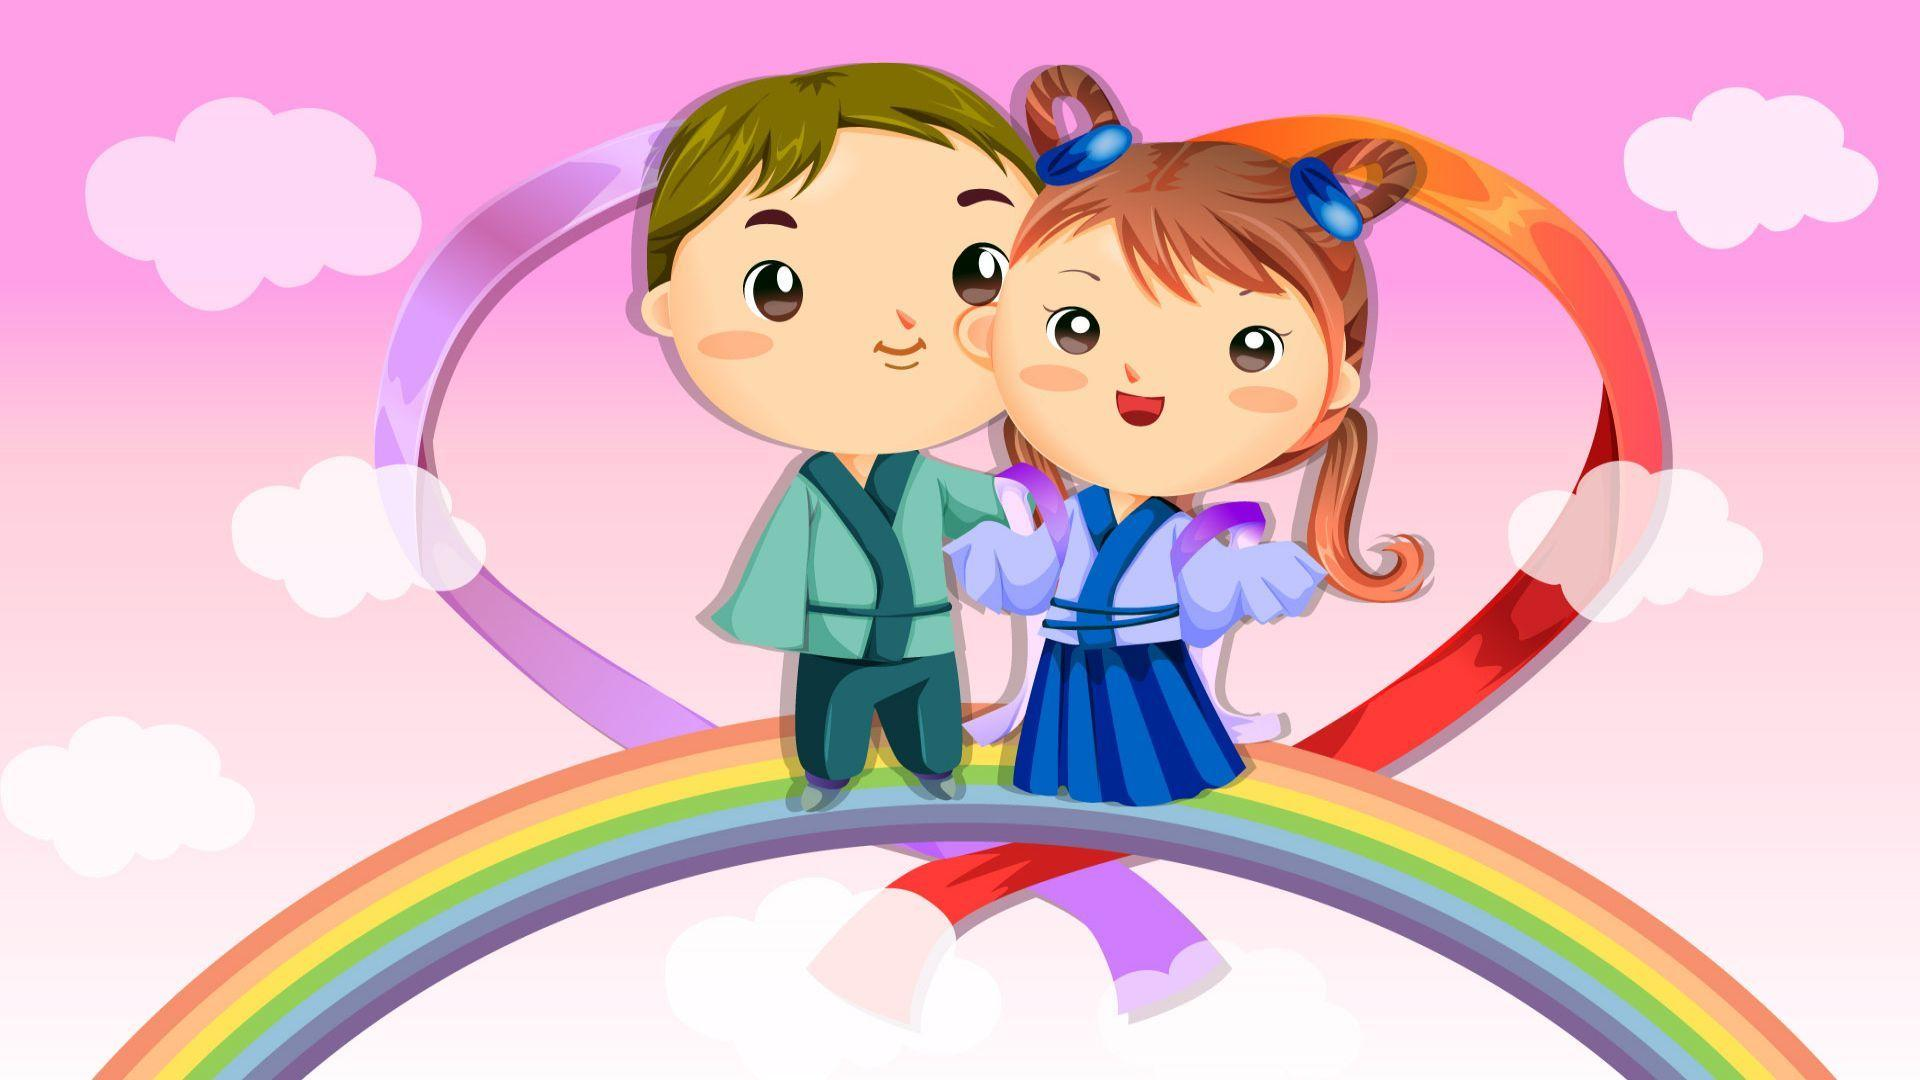 cute Love Wallpaper cartoon : Love cartoon Wallpapers - Wallpaper cave